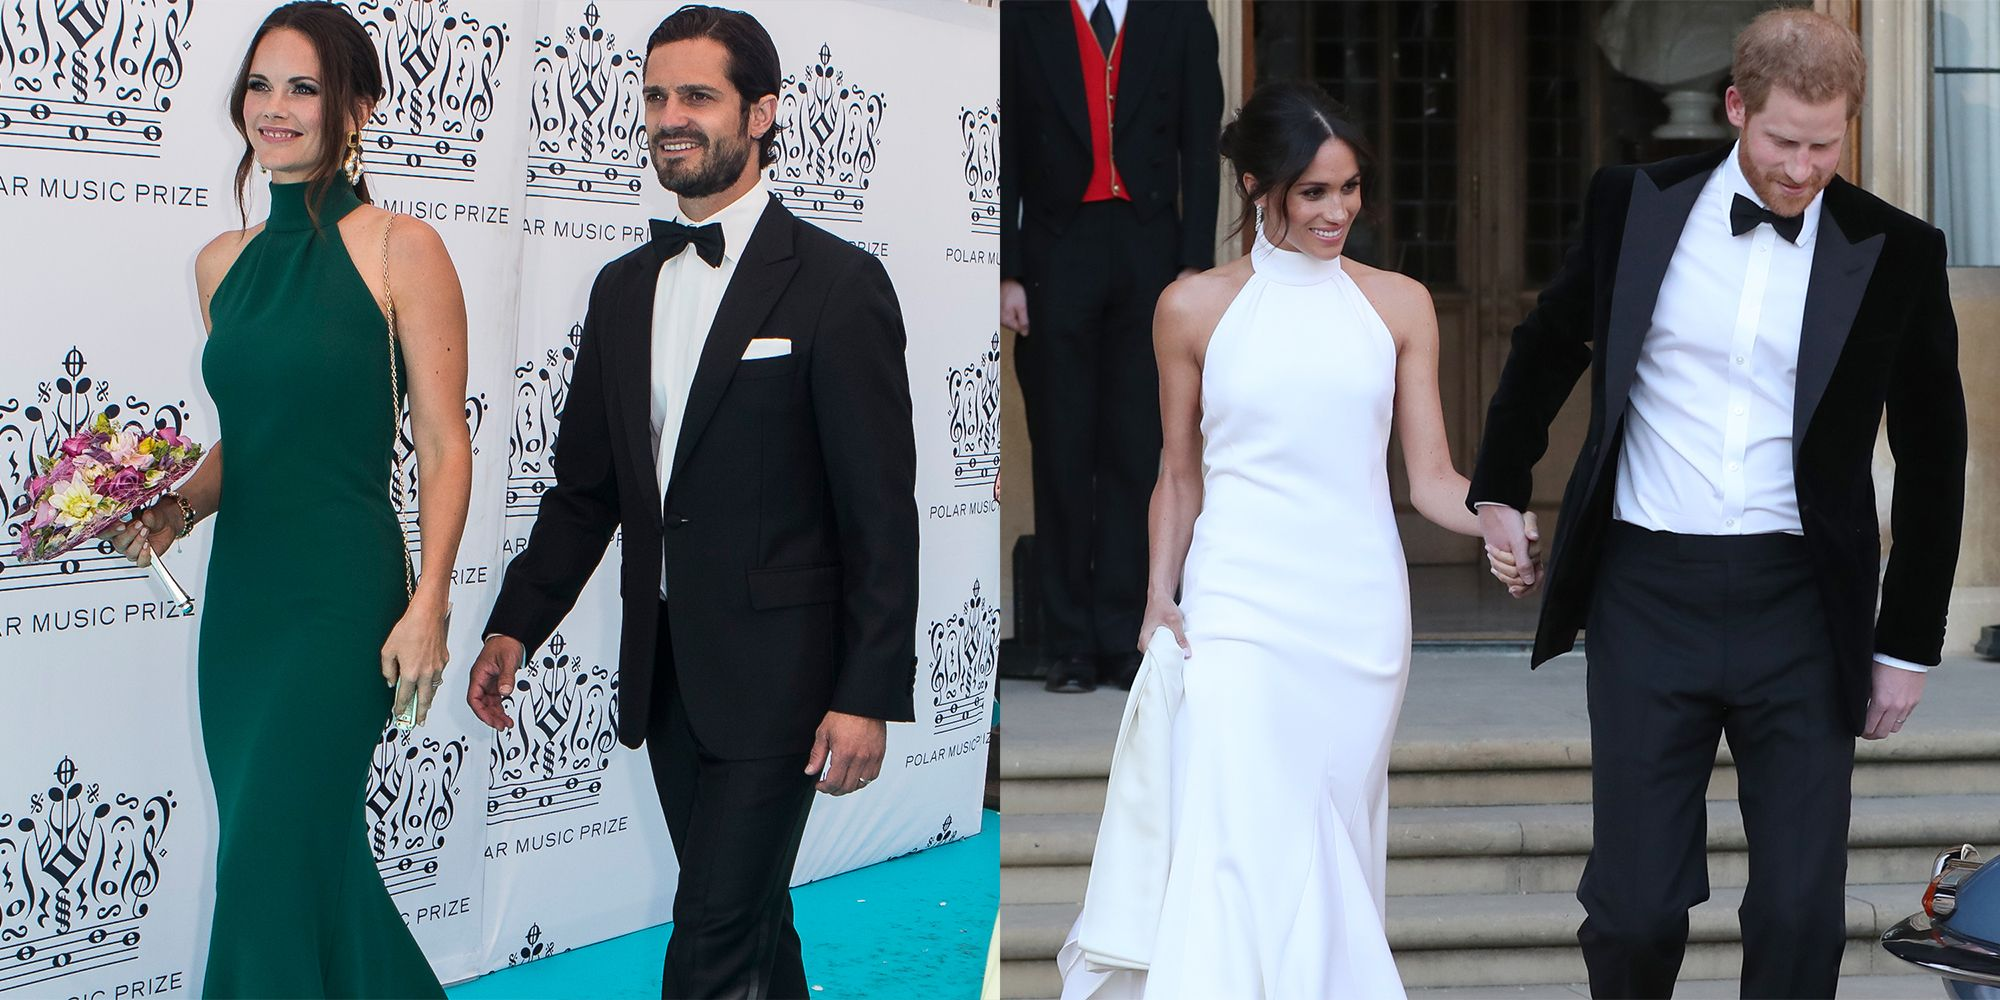 Princess Sofia of Sweden in Halter Dress Similar to Meghan Markle